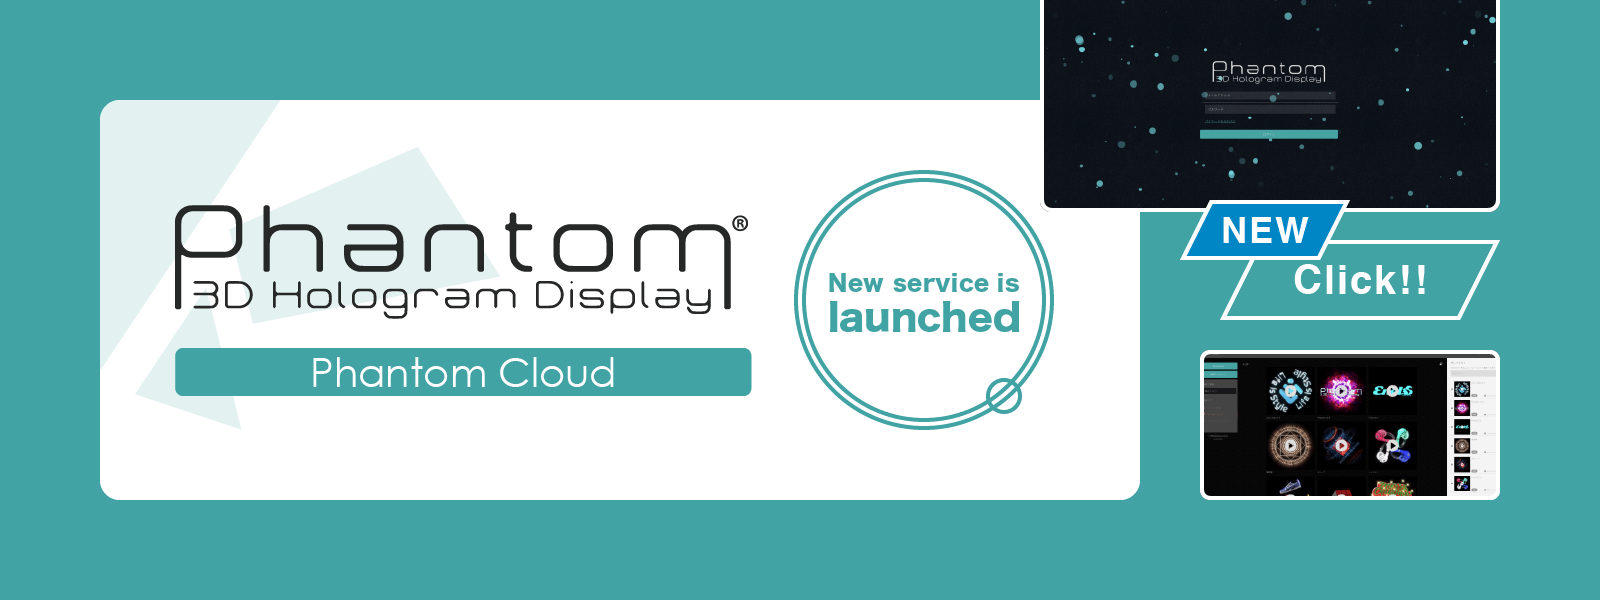 Phantom Cloud is launched